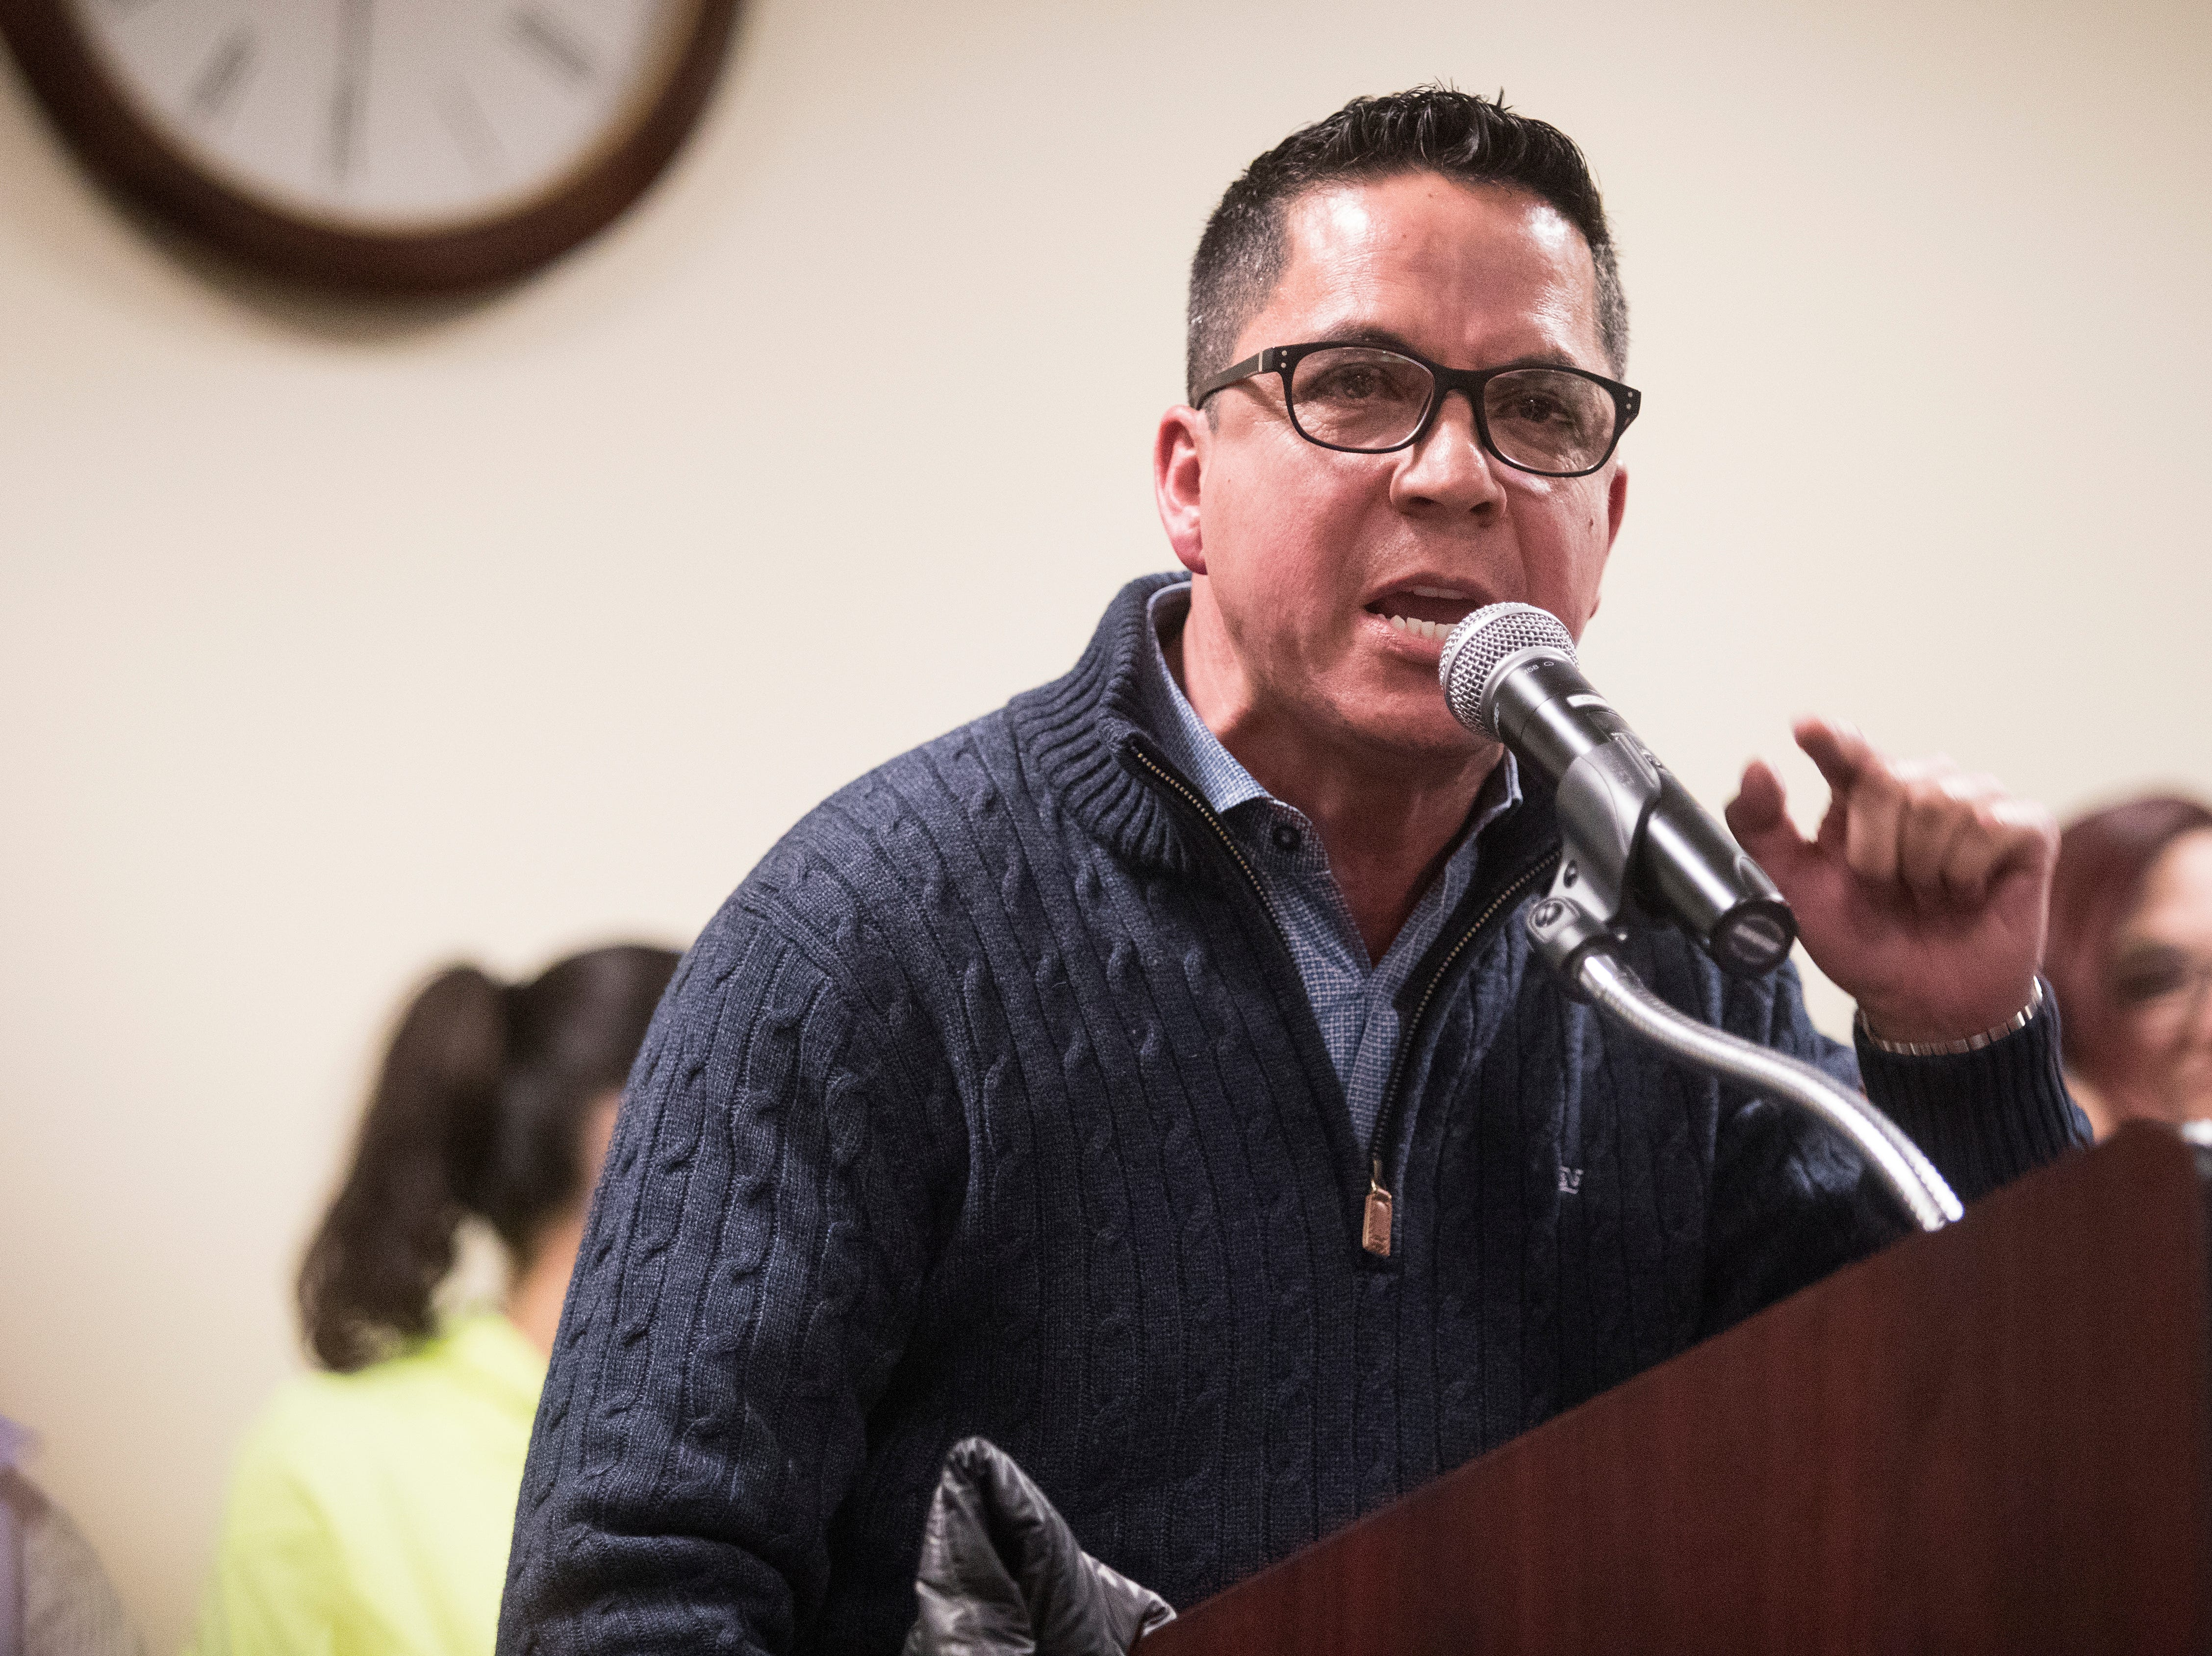 Kevin Andrade speaks to the Middletown City Council about immigration and the recent Hummers Parade Monday night at Town Hall in Middletown.